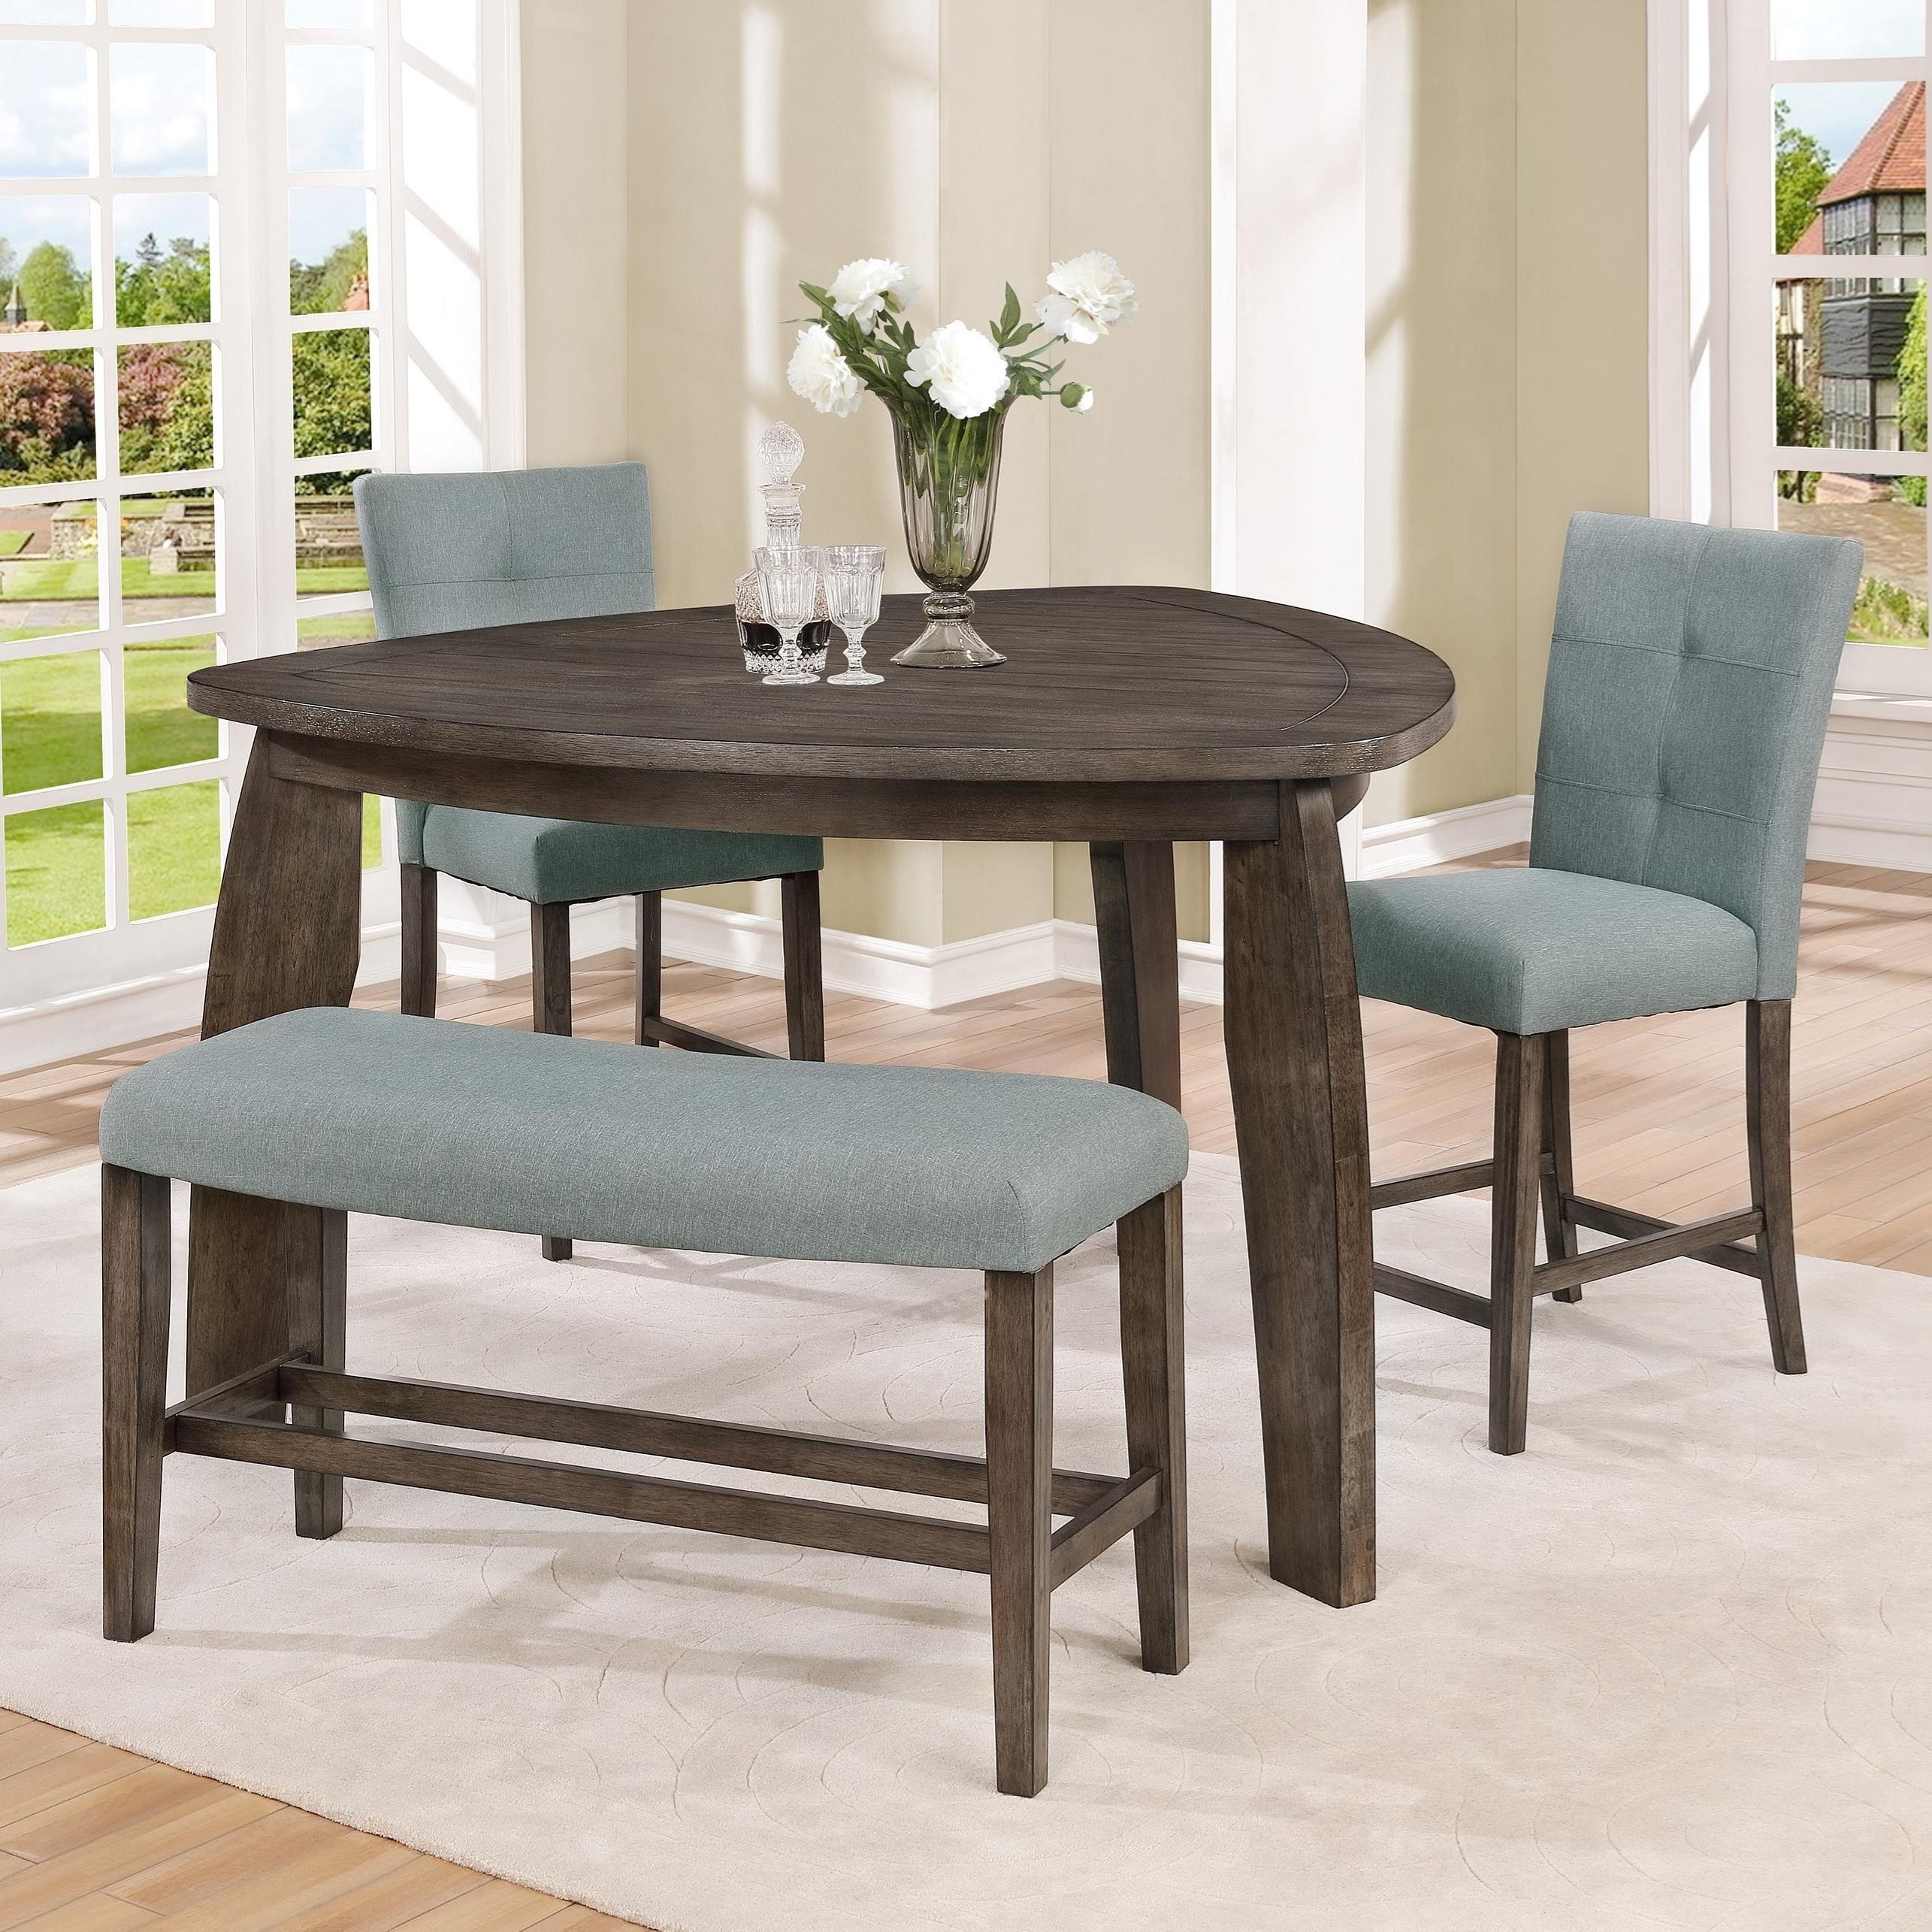 Charmant Hollis 3 Piece Counter Height Dining Set With Triangle Table By Crown Mark